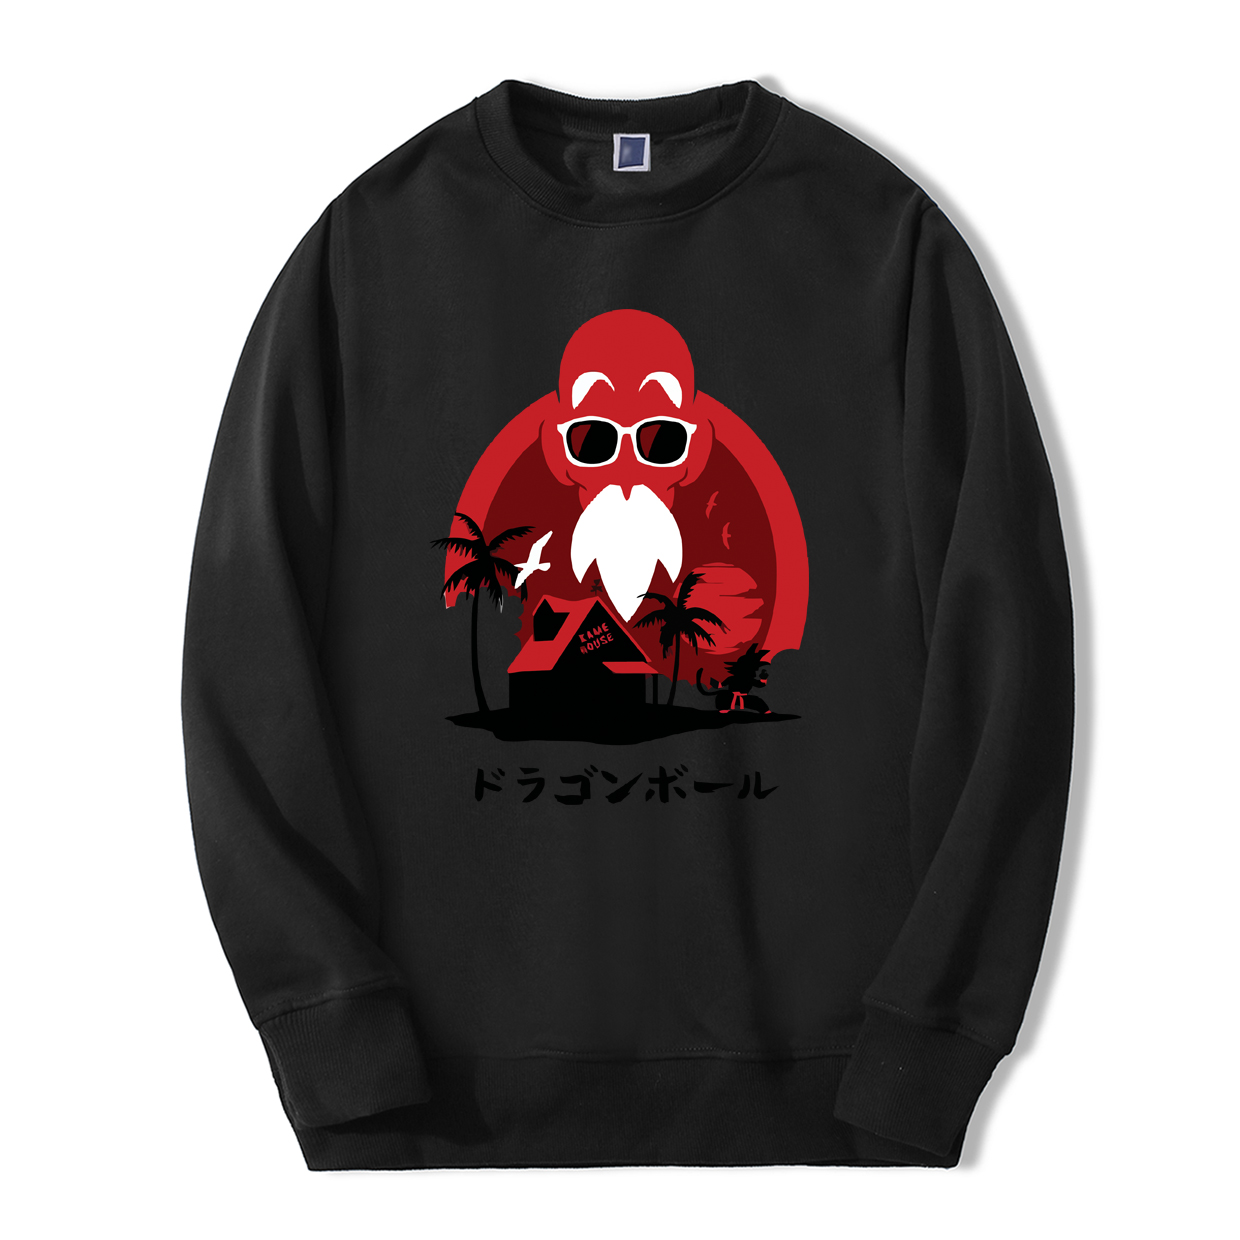 Japan Anime Dragon Ball Master Roshi Hoodies Men 2019 Autumn Winter Fleece High Quality Loose Fit Casual Sweatshirts New Hoodie